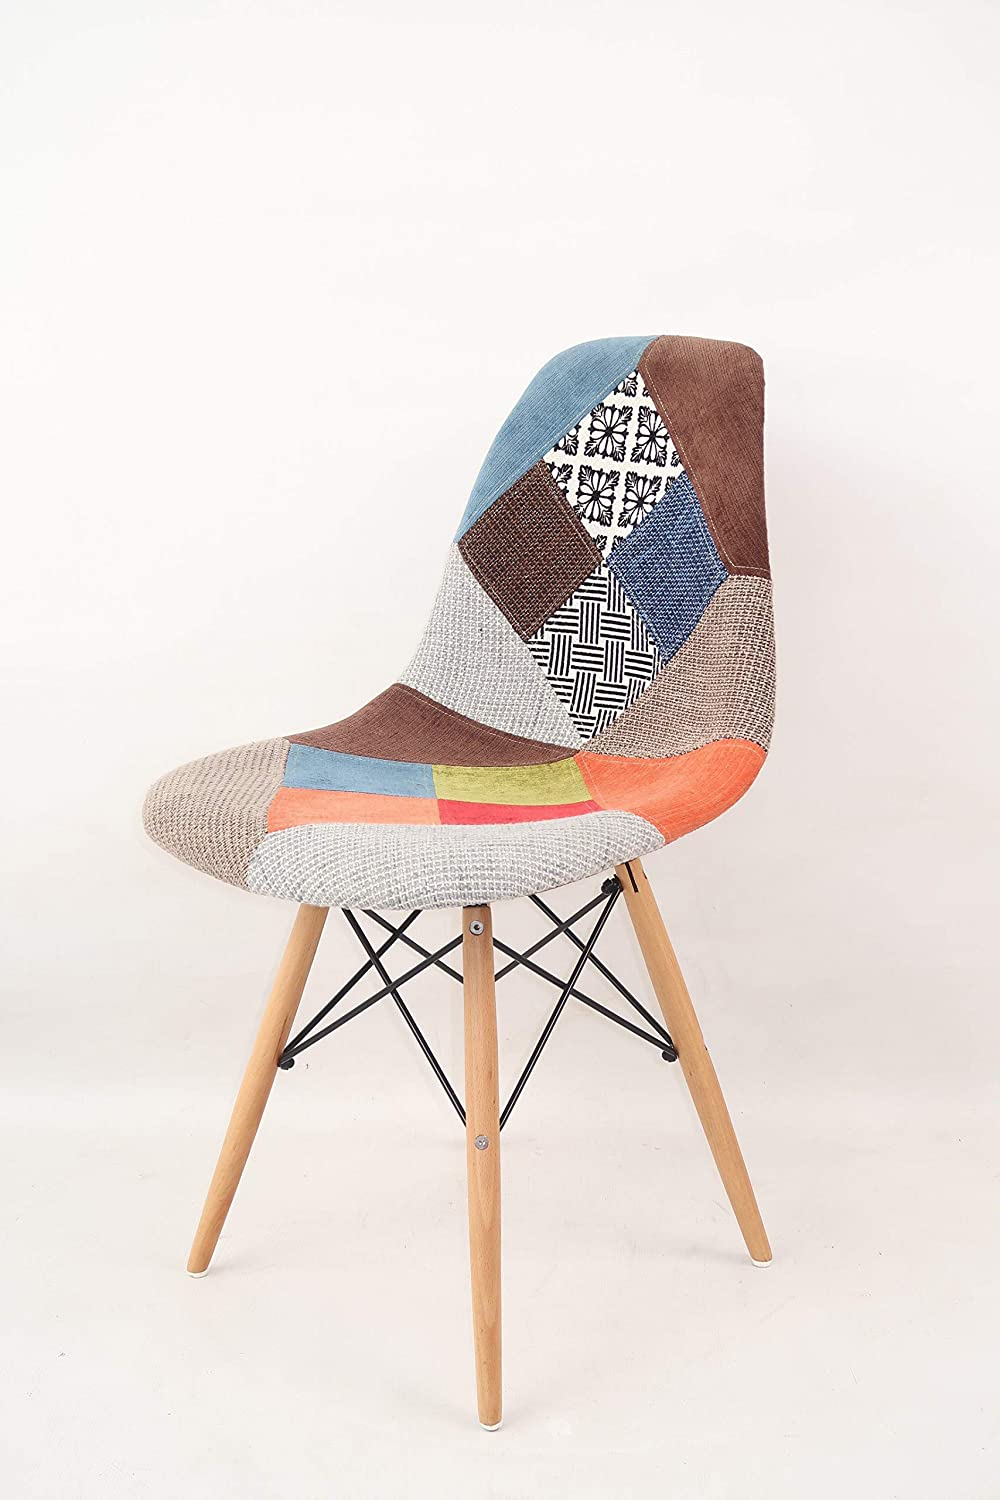 MOF Patchwork Chair Dining Chair or Office Chair or Occasional Chair  Beautiful Fabric Combination modern Retro Chair (WITHOUT ARMS) (10)